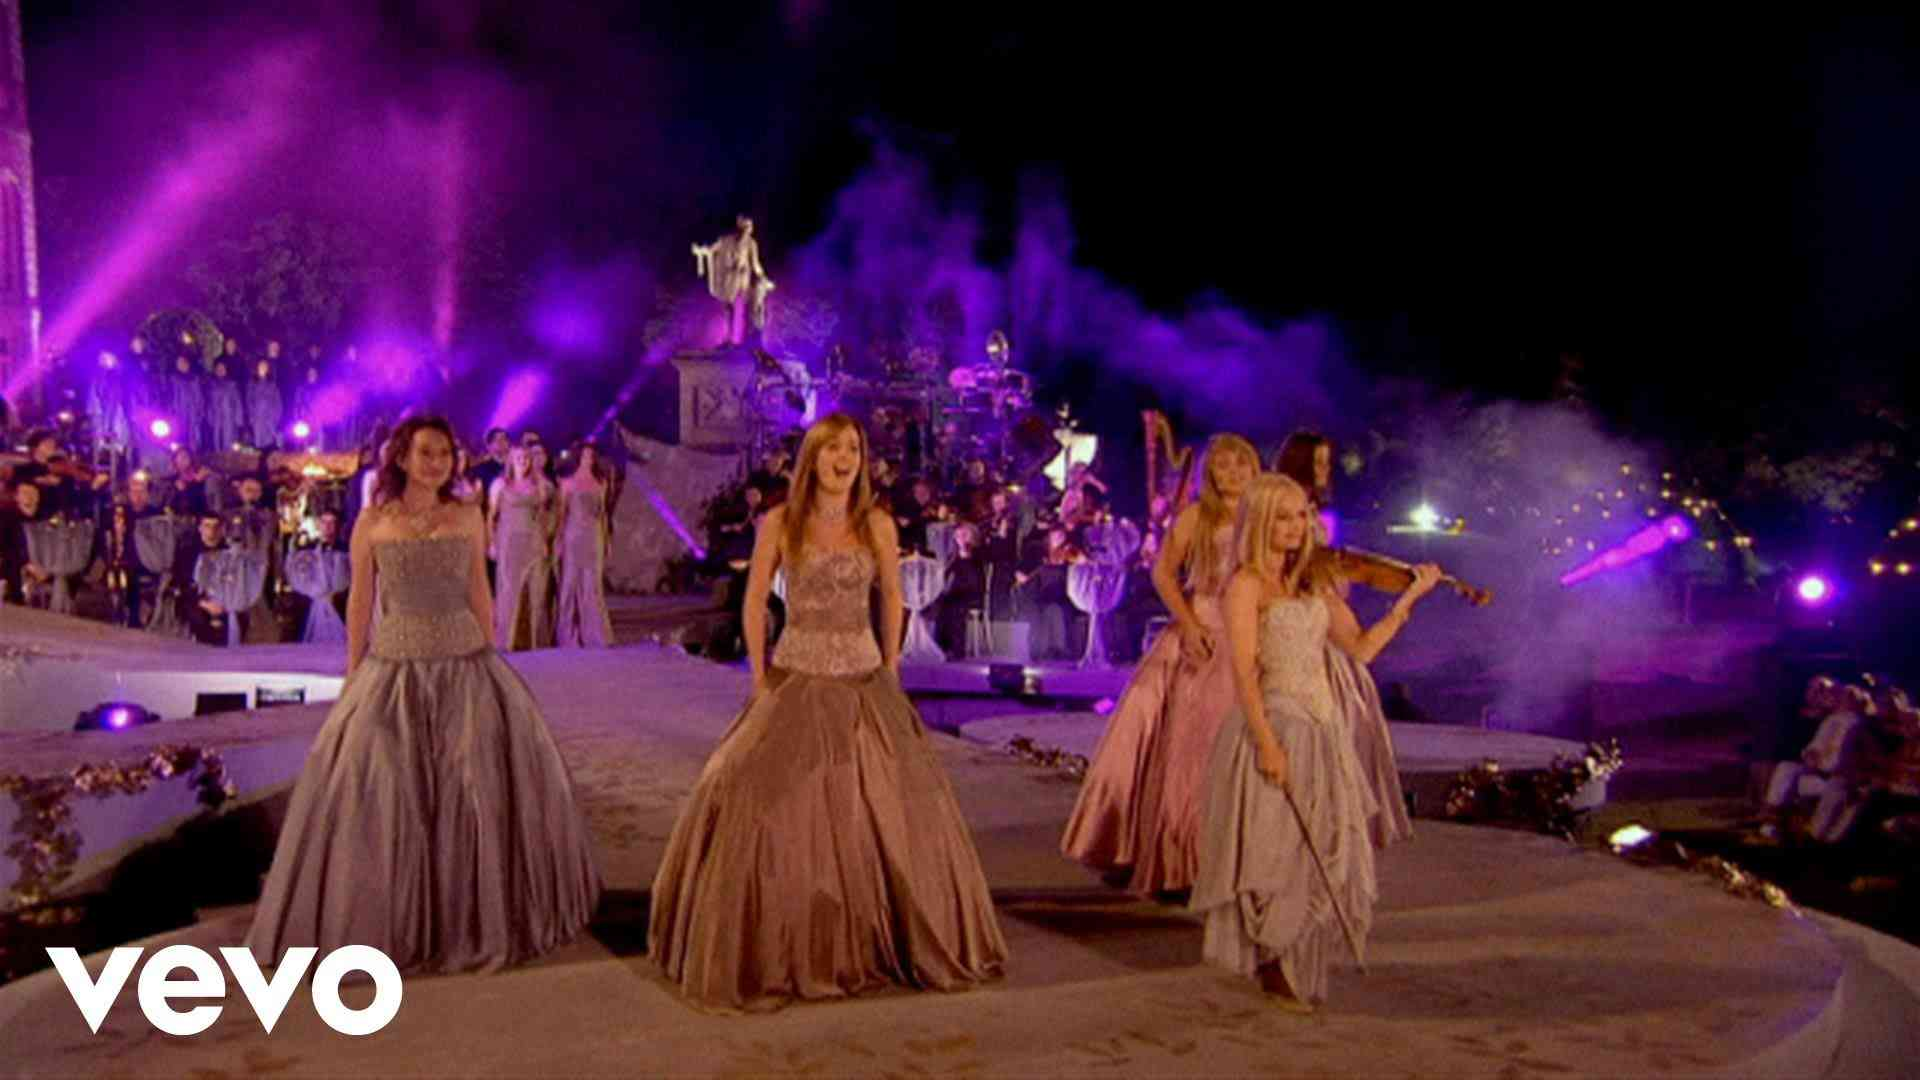 Celtic Woman - You Raise Me Up - YouTube